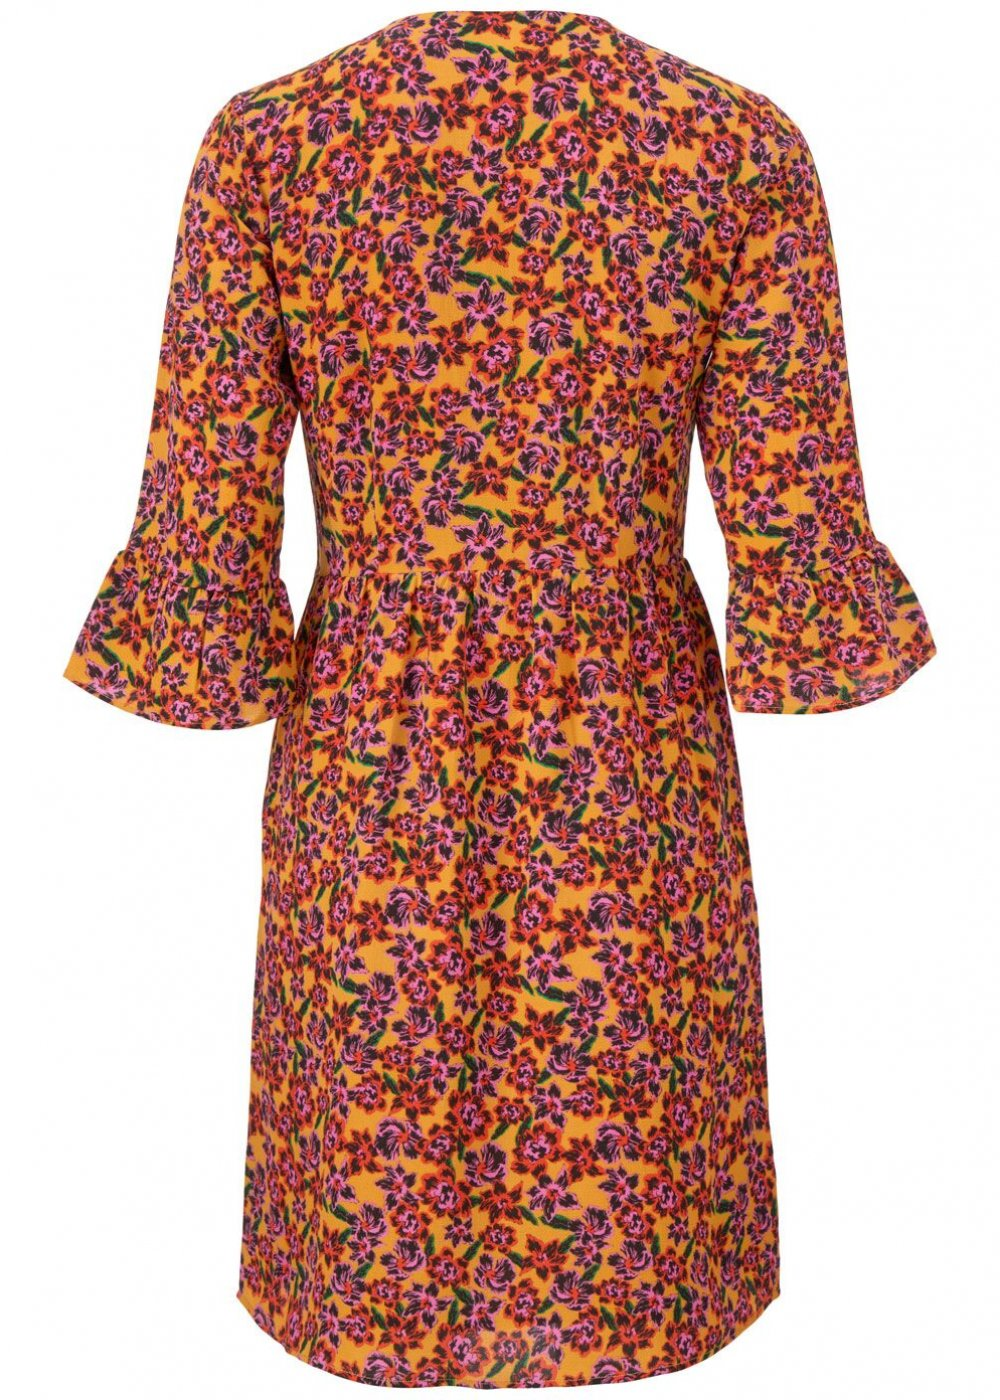 MODSTRØM Madonna Print Dress